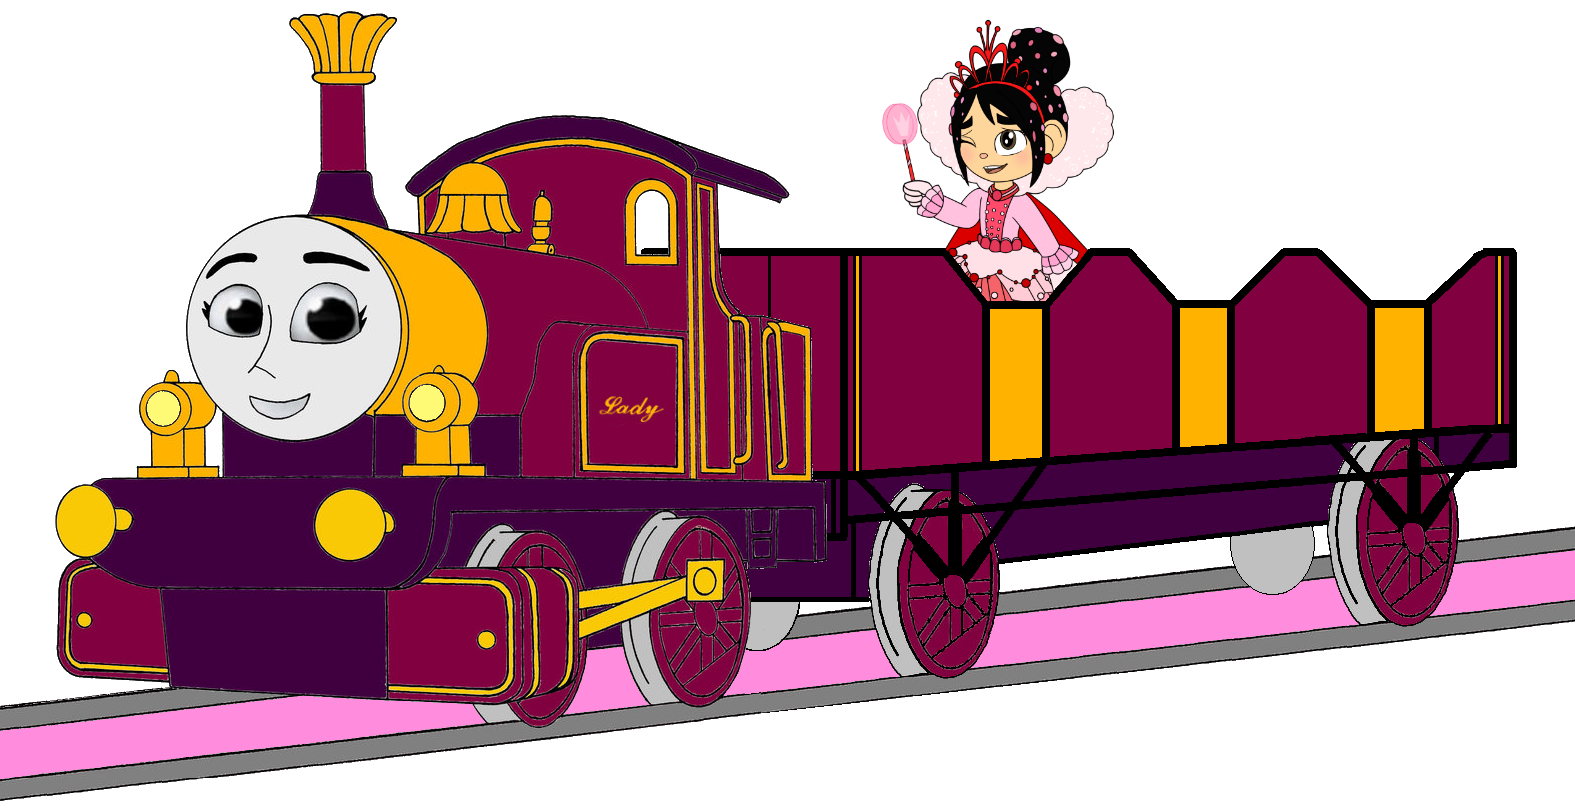 Lady with her Open-Topped Carriage & Vanellope travelling on it (Mirrored)